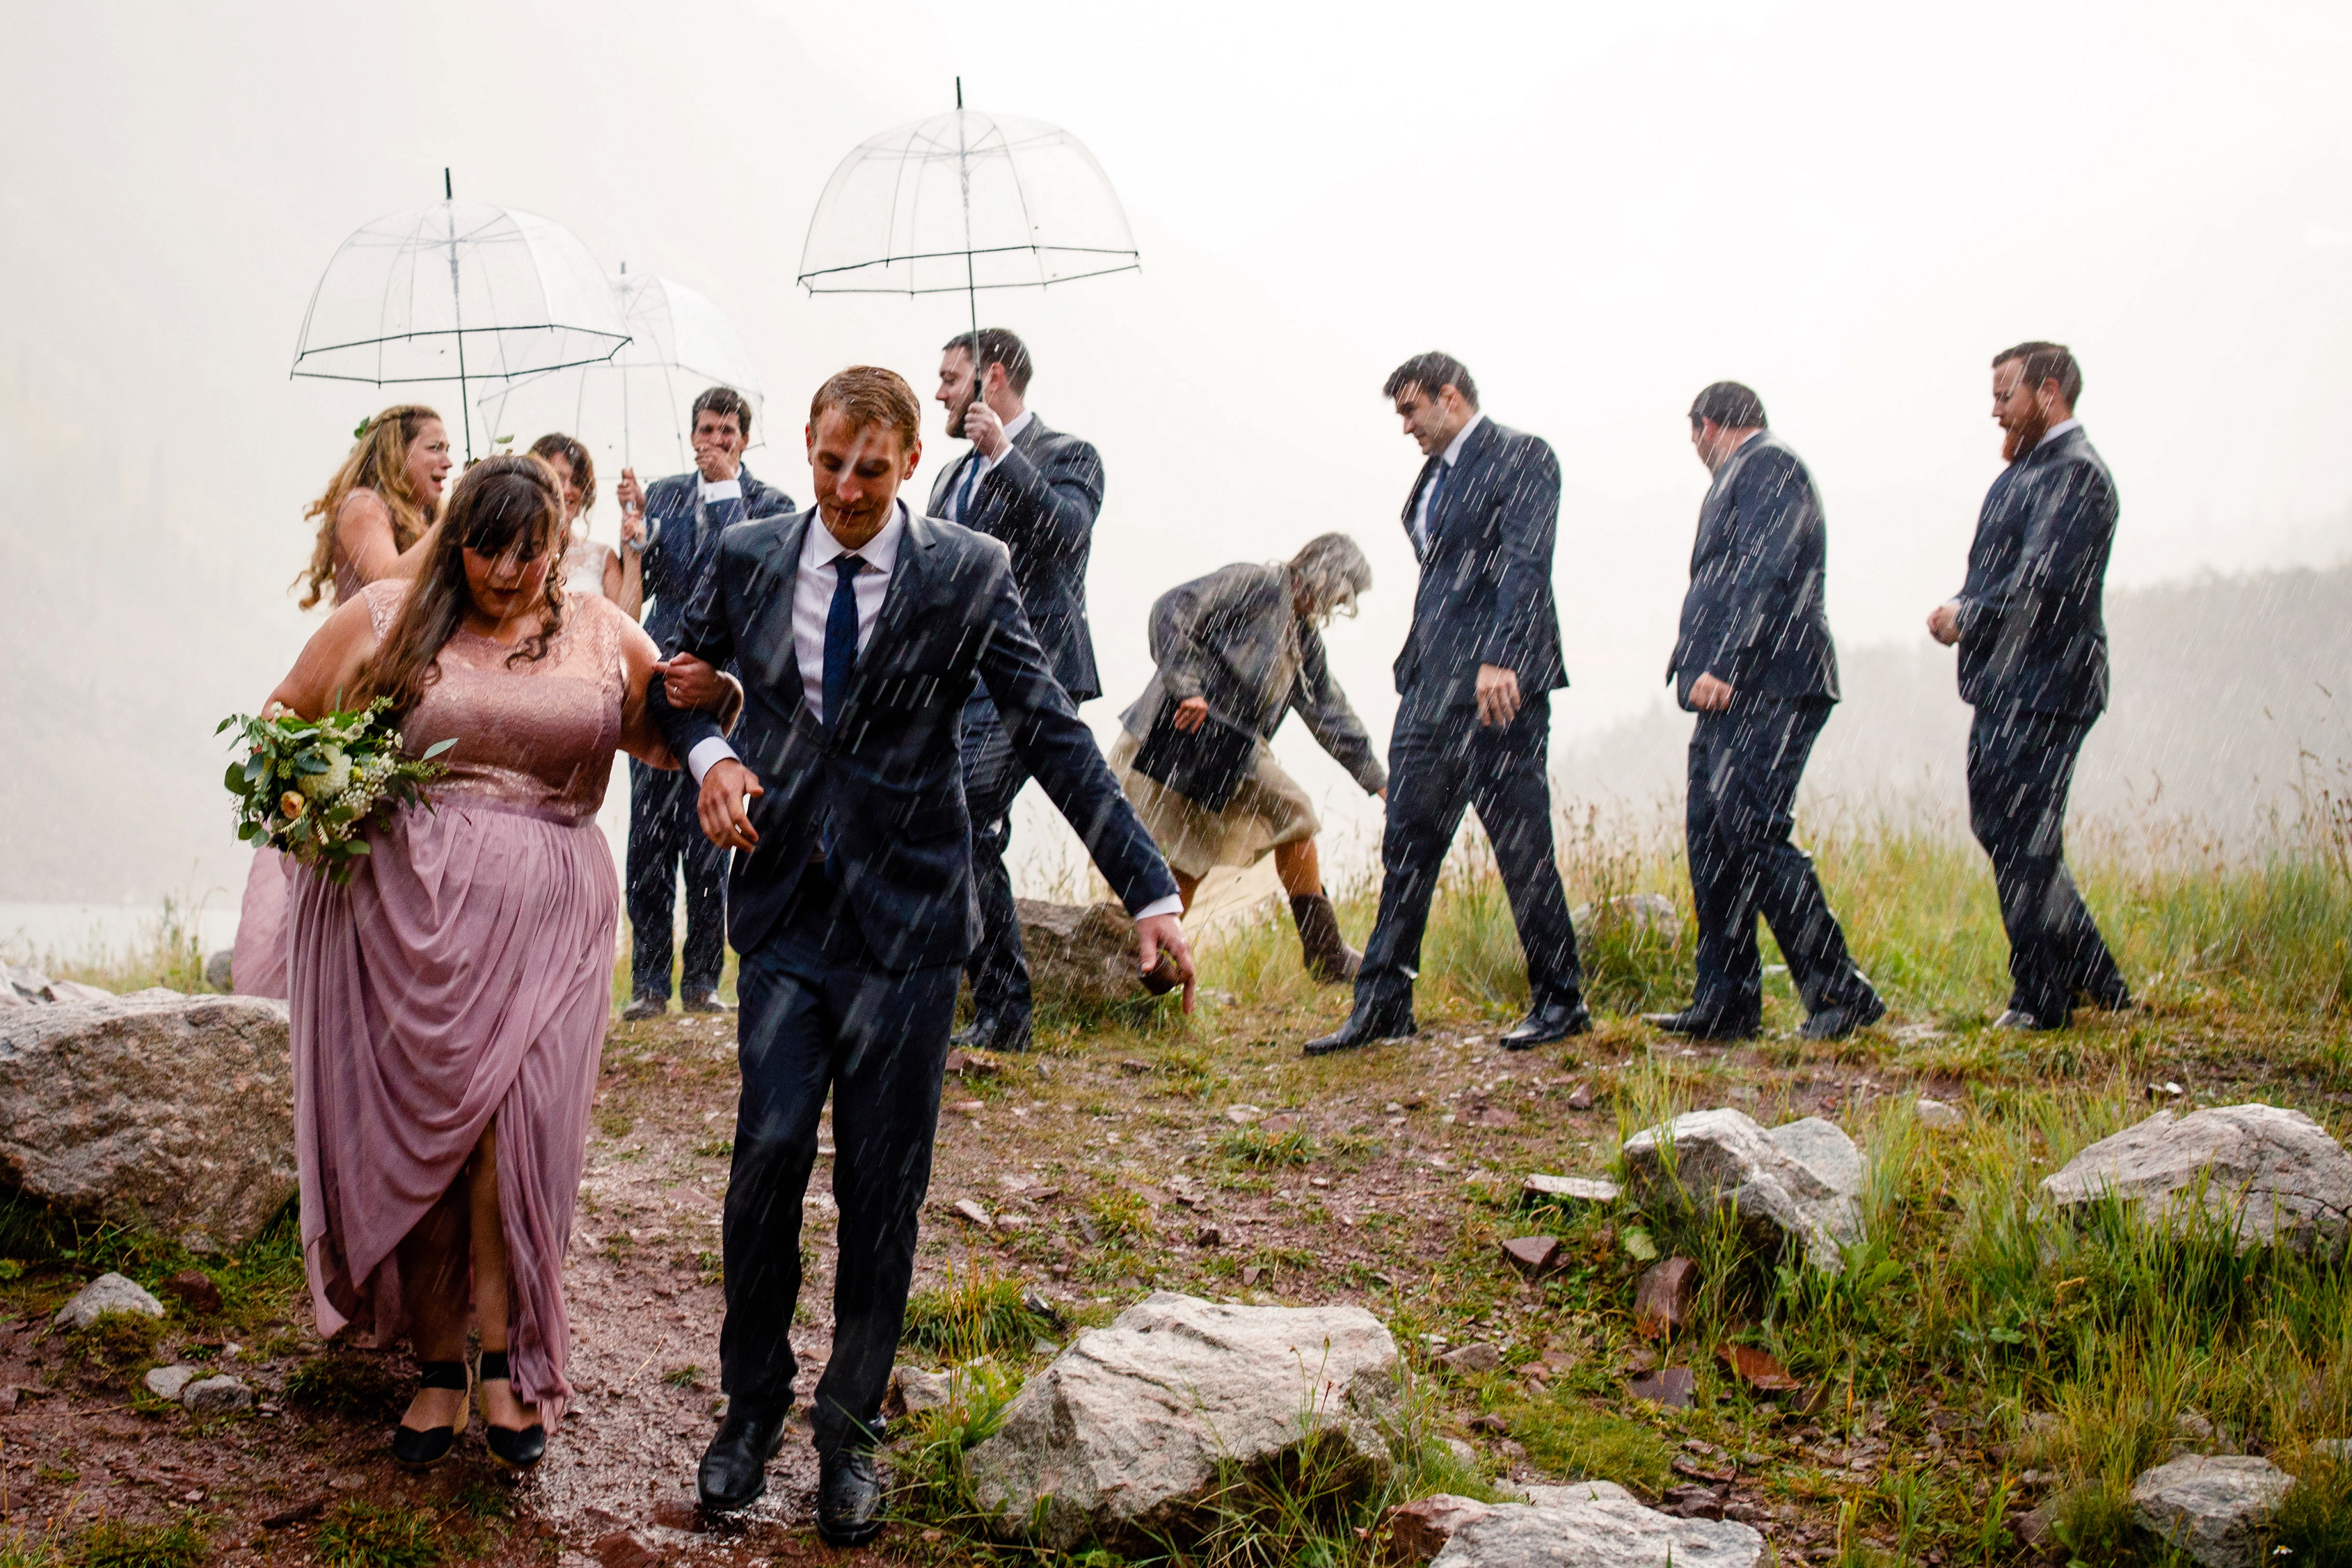 A rainy wedding ceremony in Aspen, CO.